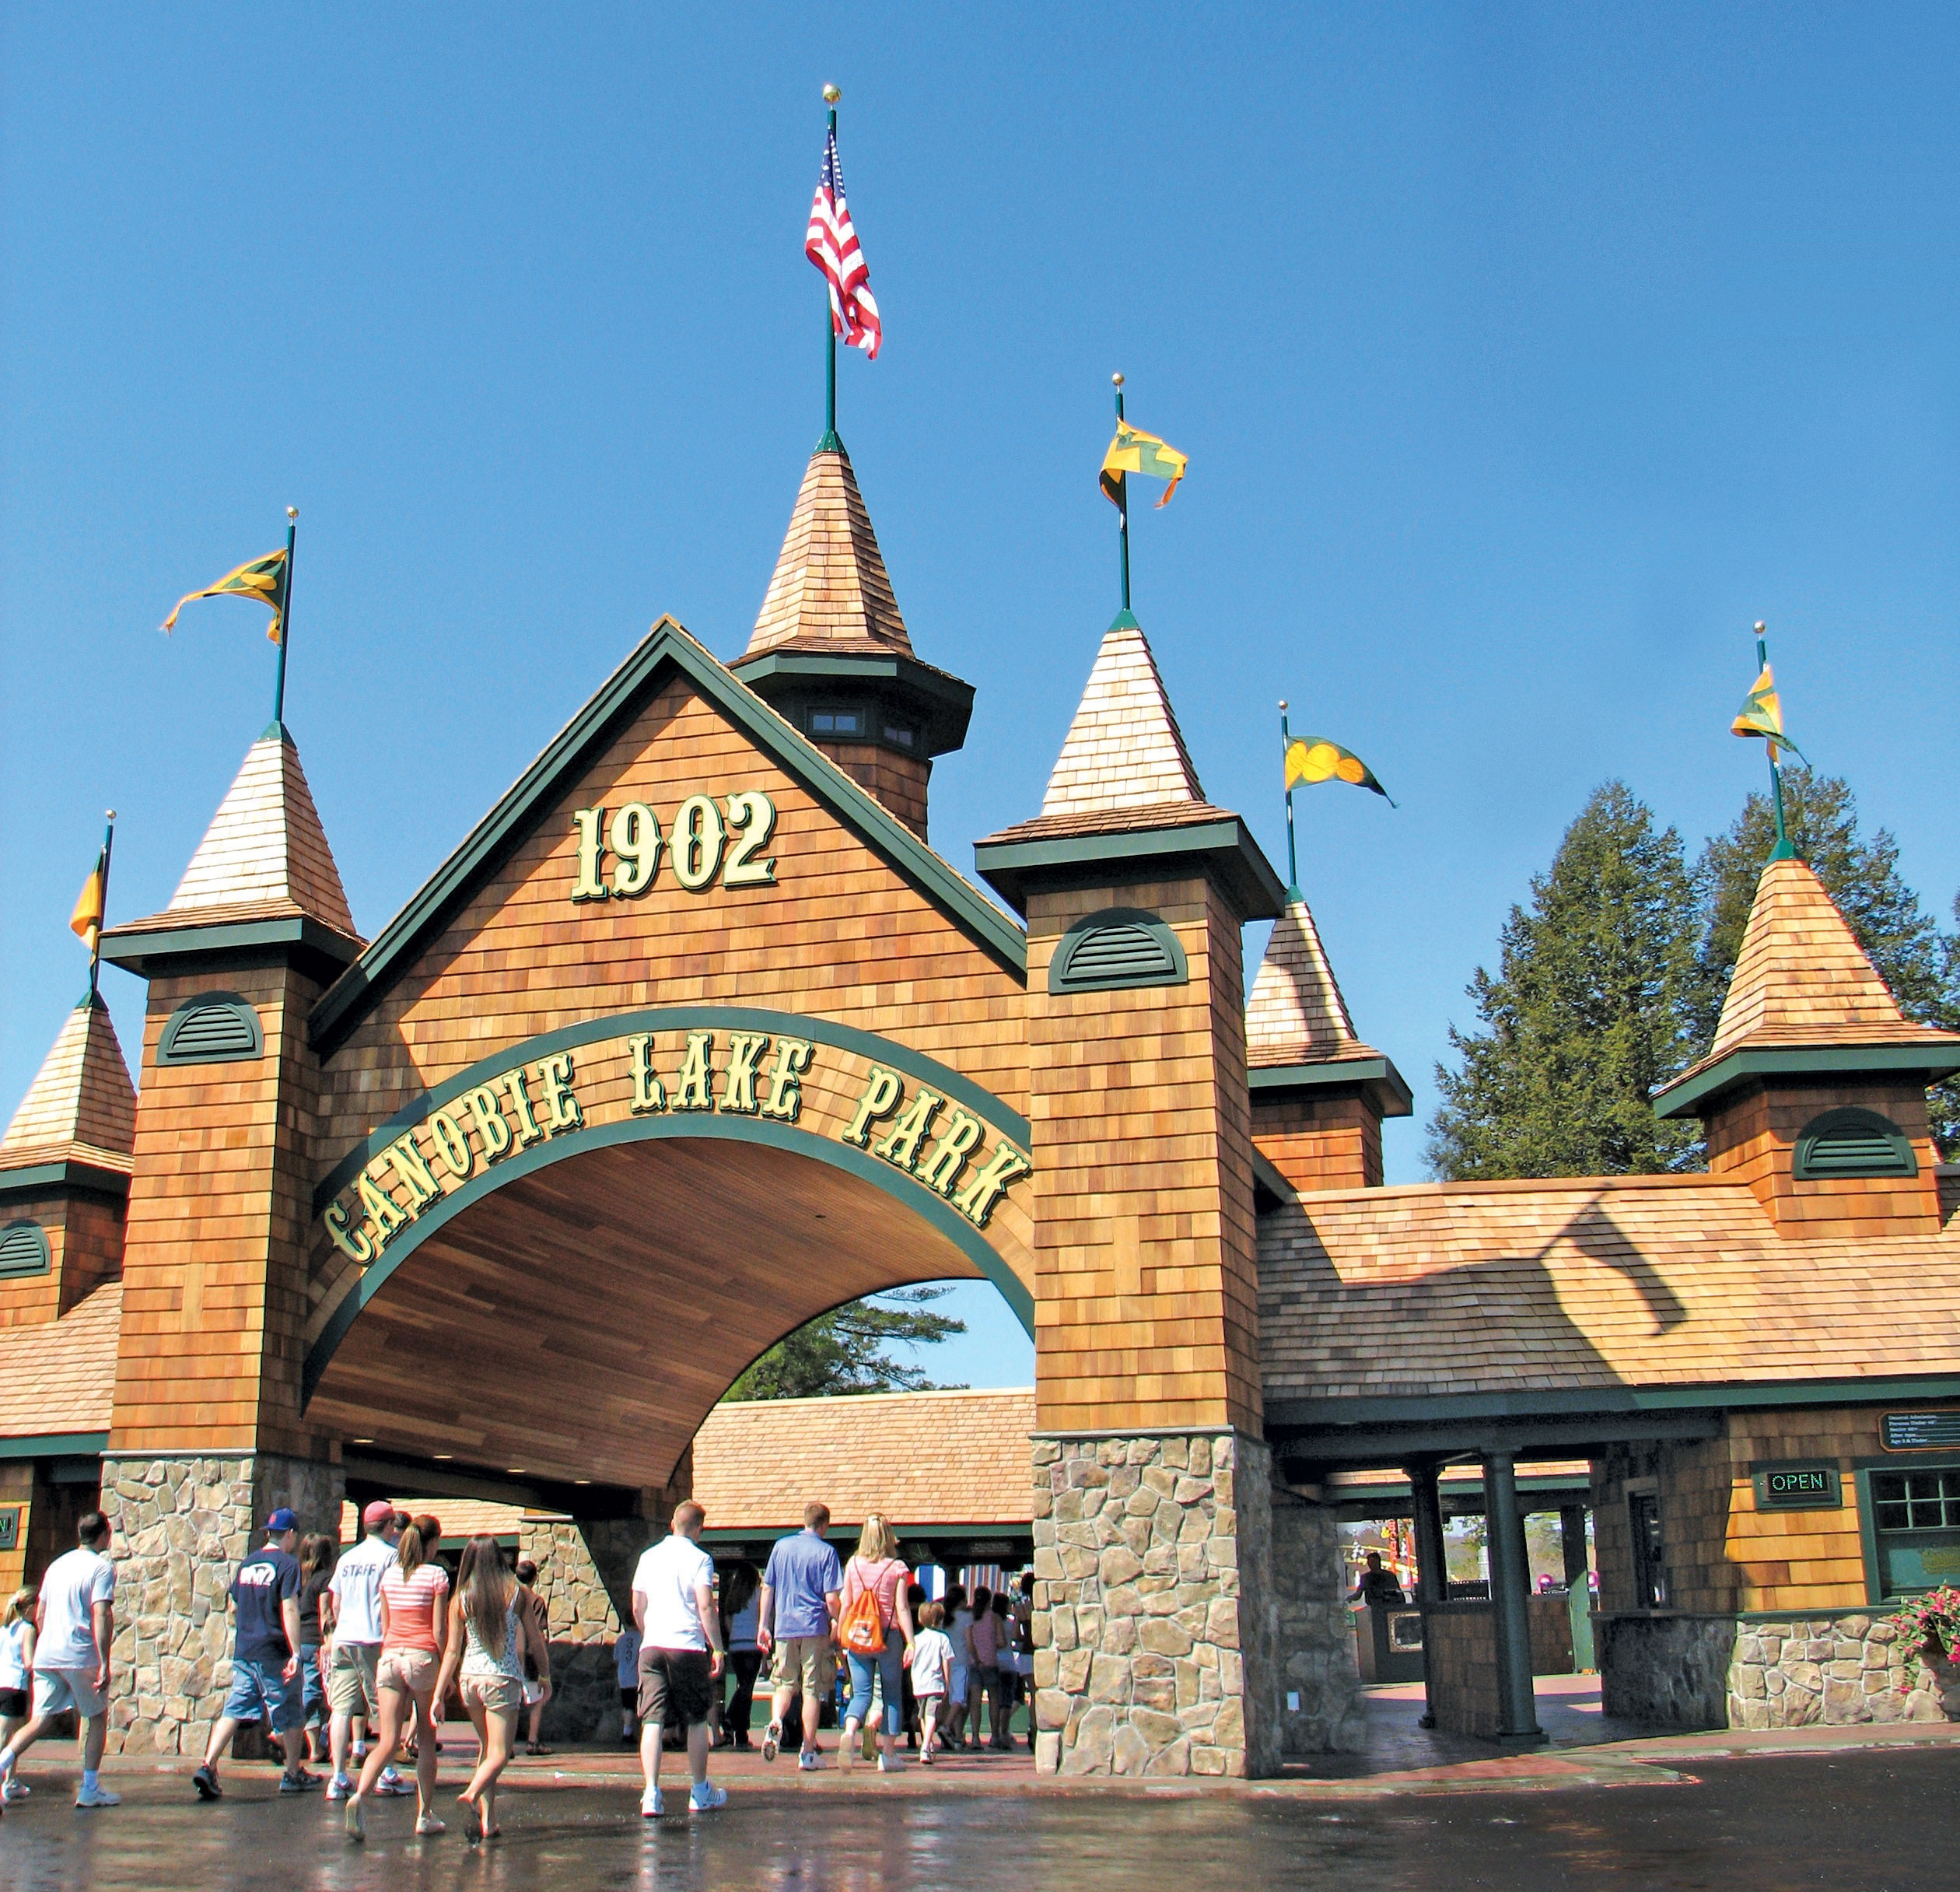 Canobie Lake Park | Nh.life, Your Guide To New Hampshire - Free Printable Coupons For Canobie Lake Park